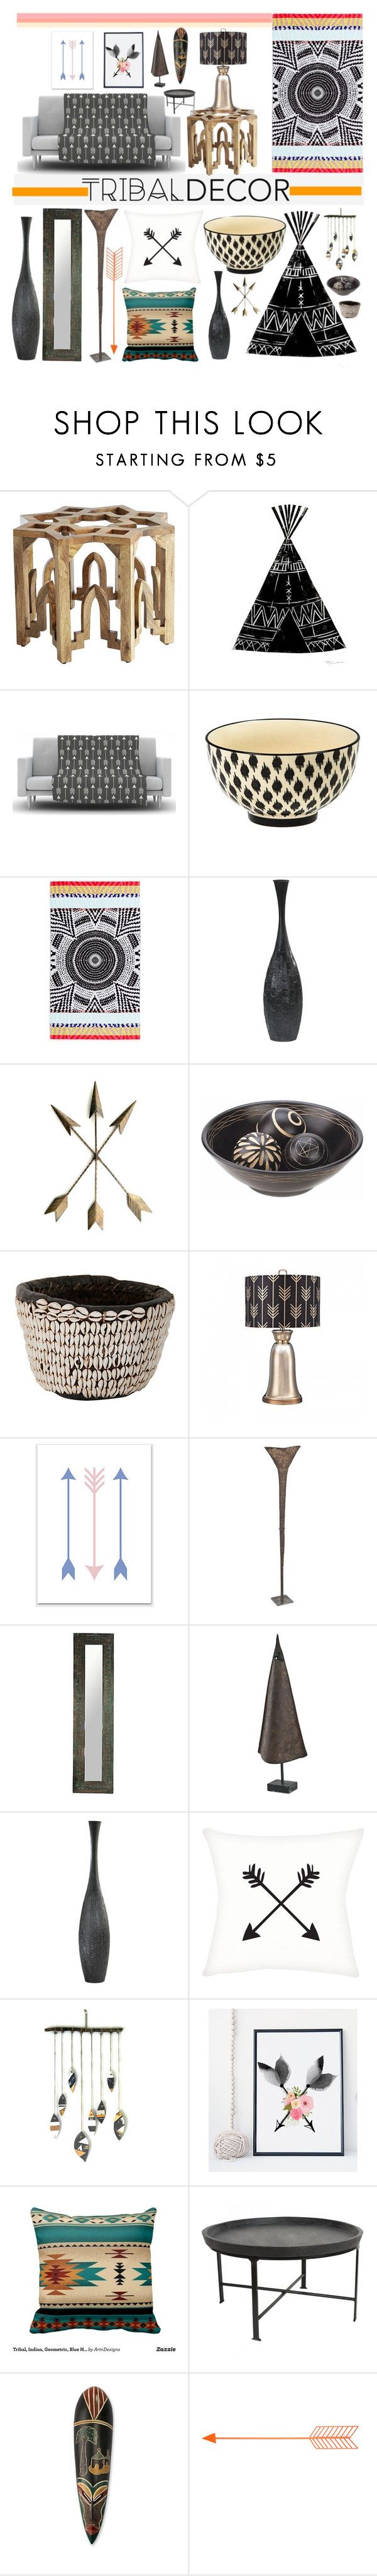 """Tribal Decor"" by piedraandjesus ❤ liked on Polyvore featuring interior, interiors, interior design, home, home decor, interior decorating, Pier 1 Imports, Kess InHouse, Mara Hoffman and Cyan Design"